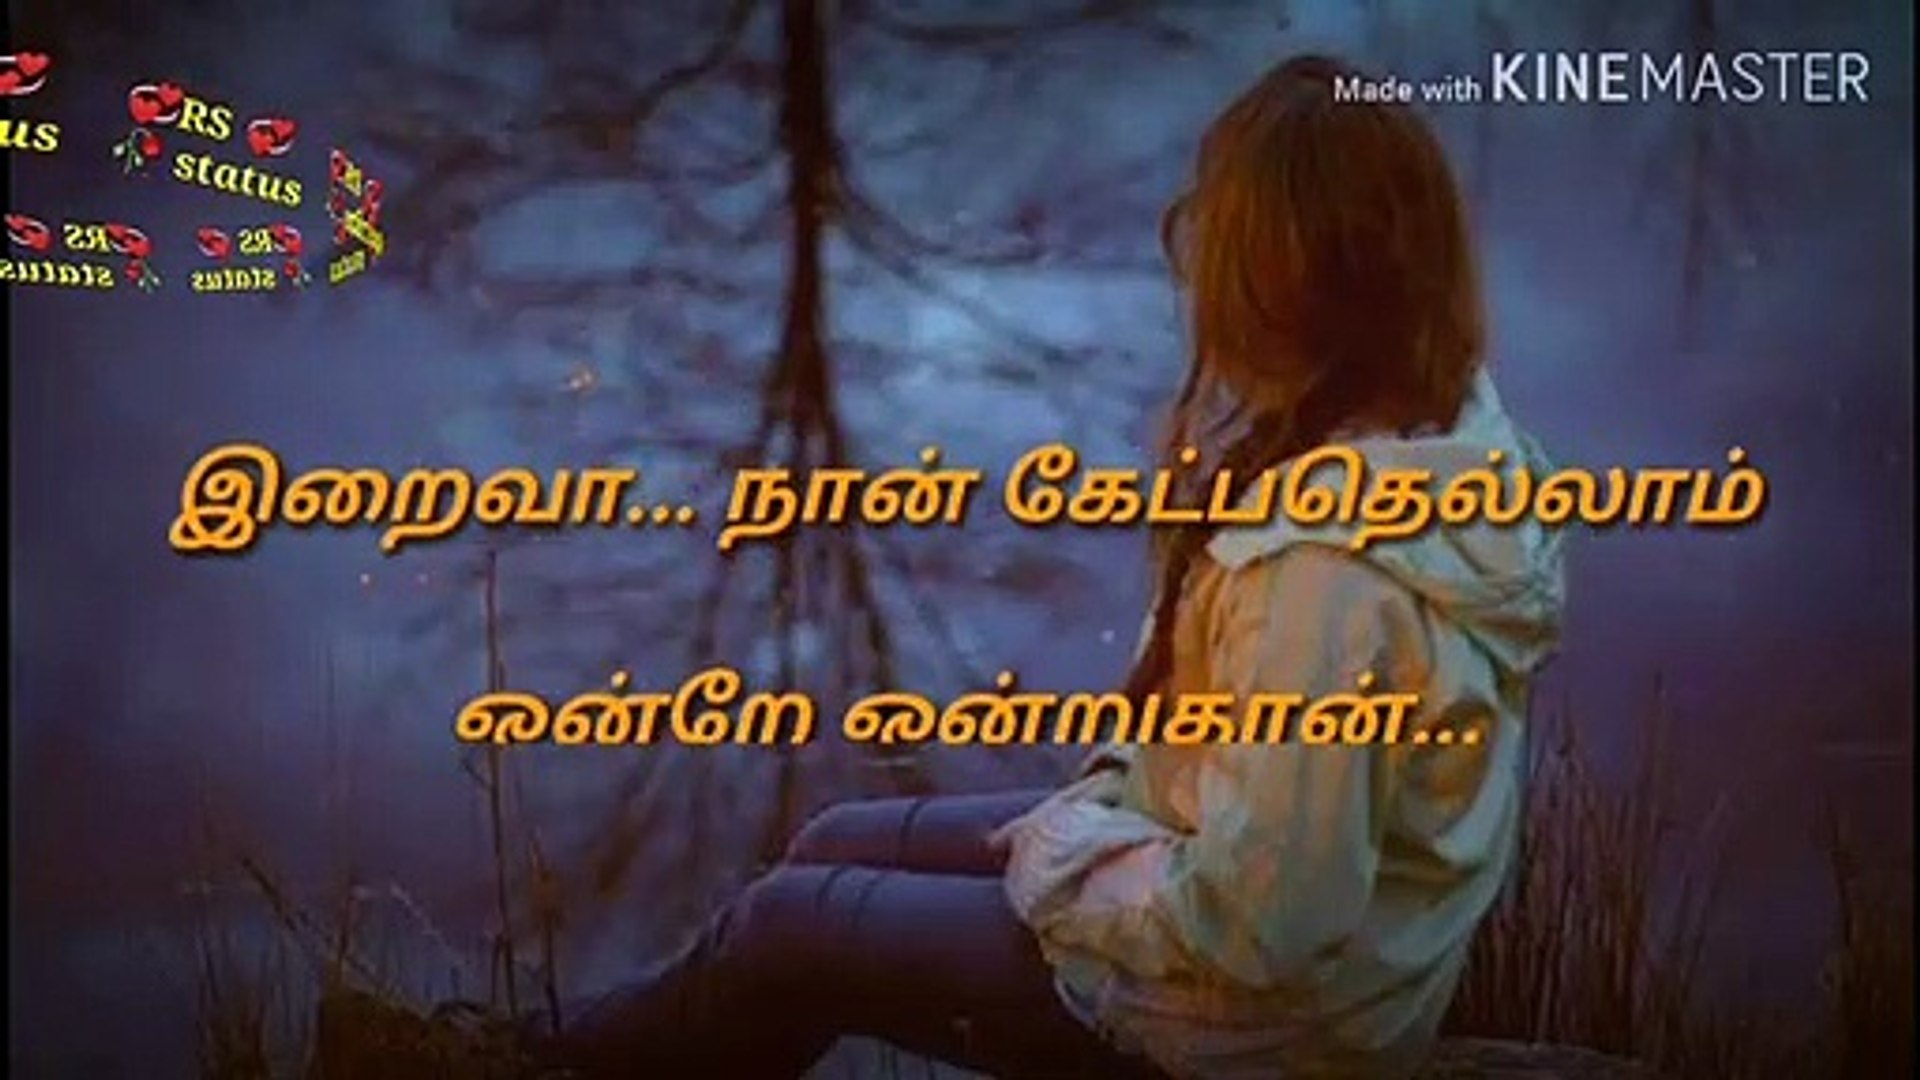 WhatsApp status video RS status Tamil vodios songs status video New status video Tamil Nadu